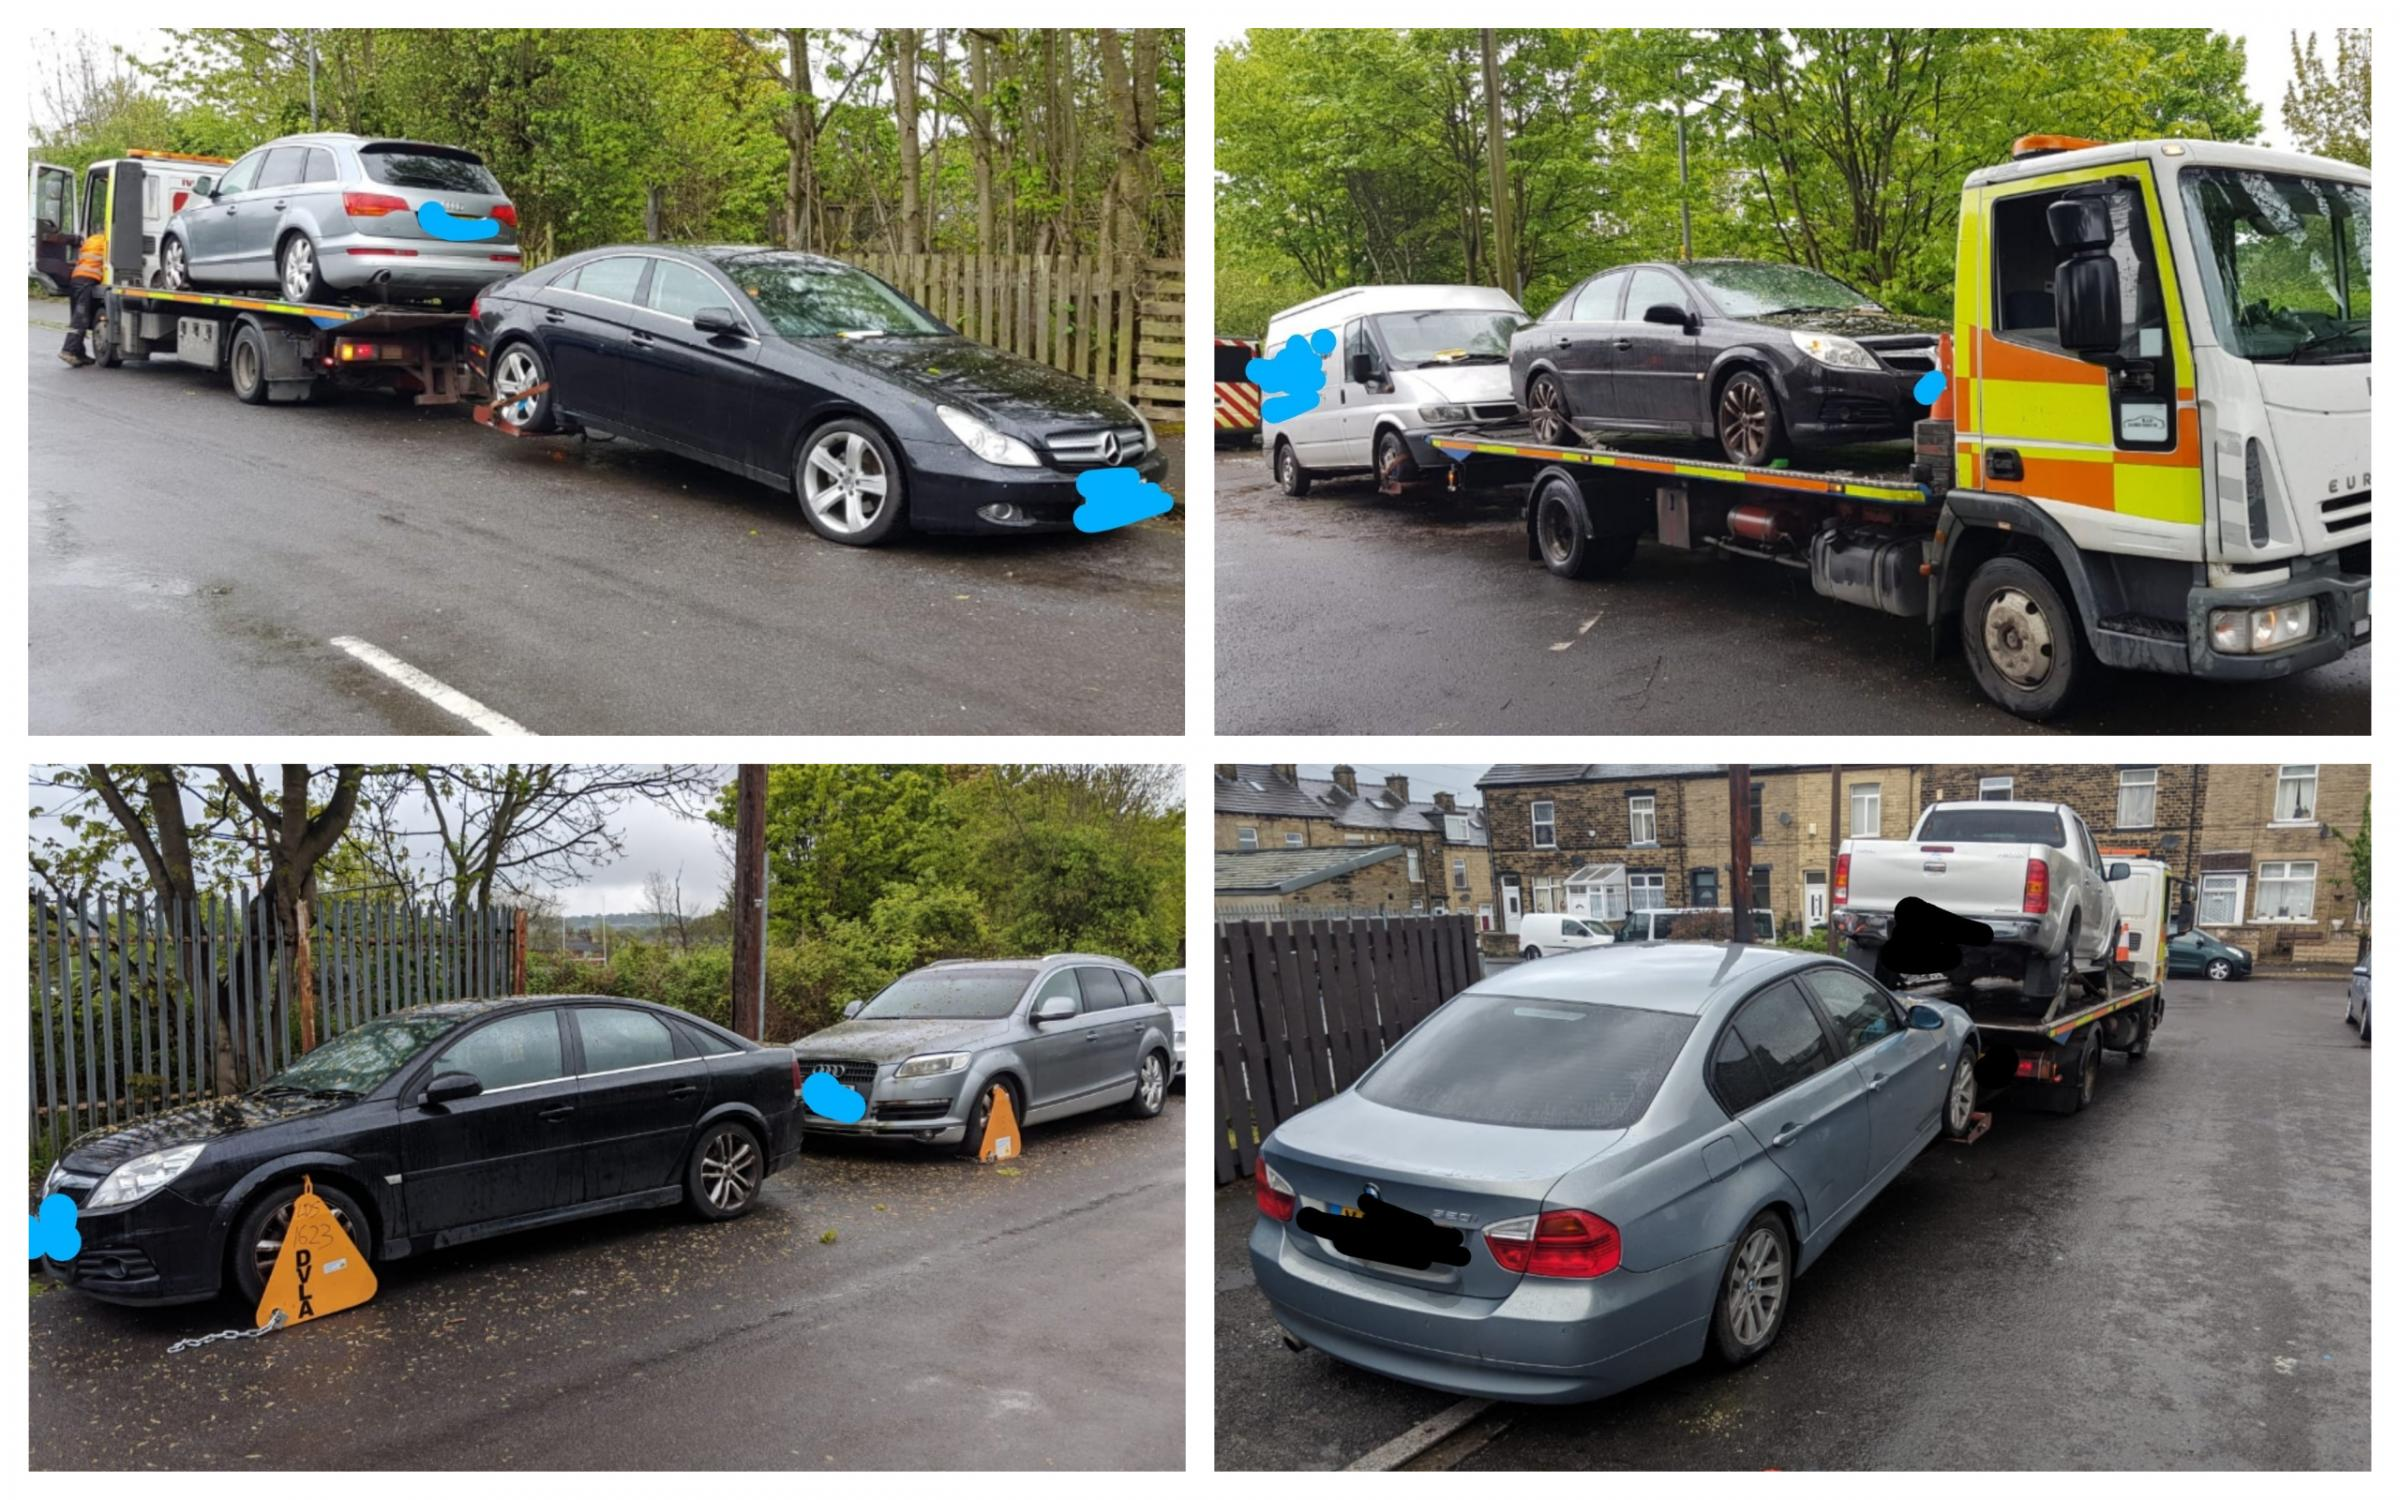 Police carry out crackdown on untaxed cars in Scholemoor